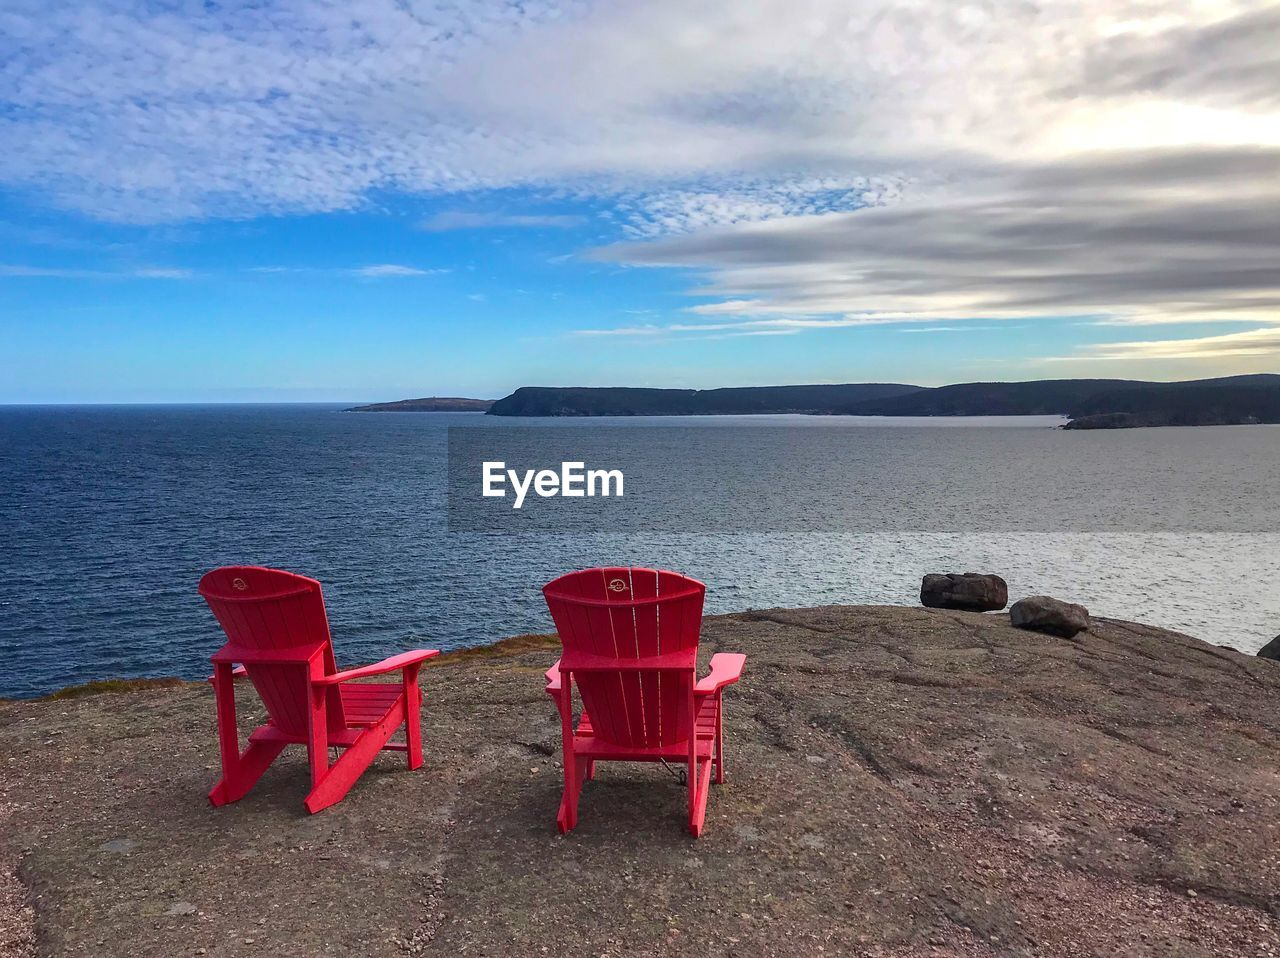 water, sea, sky, beauty in nature, scenics - nature, tranquil scene, cloud - sky, red, tranquility, horizon over water, seat, horizon, no people, beach, chair, nature, land, idyllic, absence, outdoors